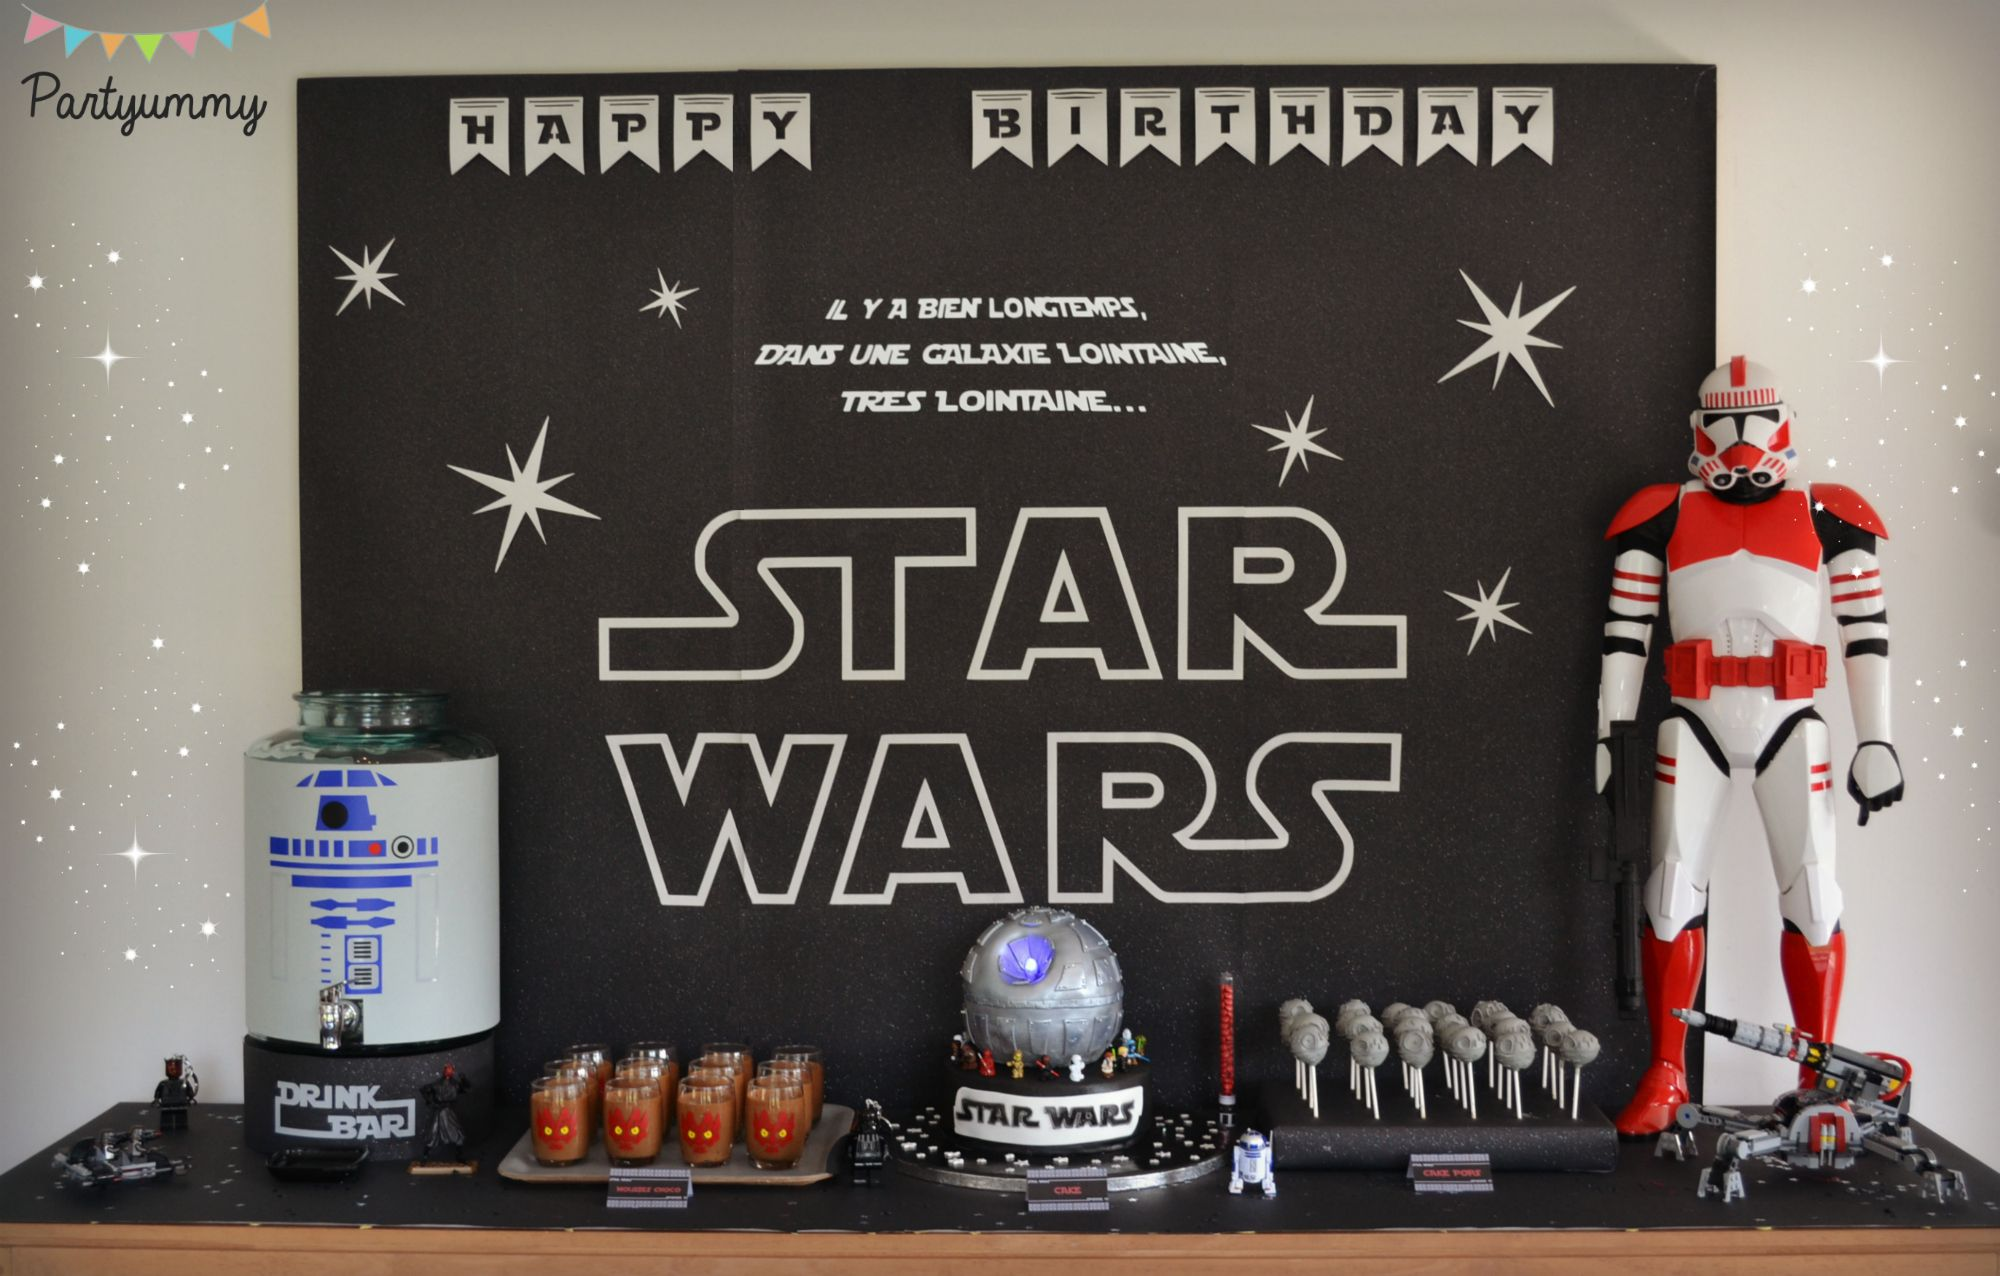 des id es g teaux d co et costumes pour organiser un anniversaire star wars anniv star wars. Black Bedroom Furniture Sets. Home Design Ideas